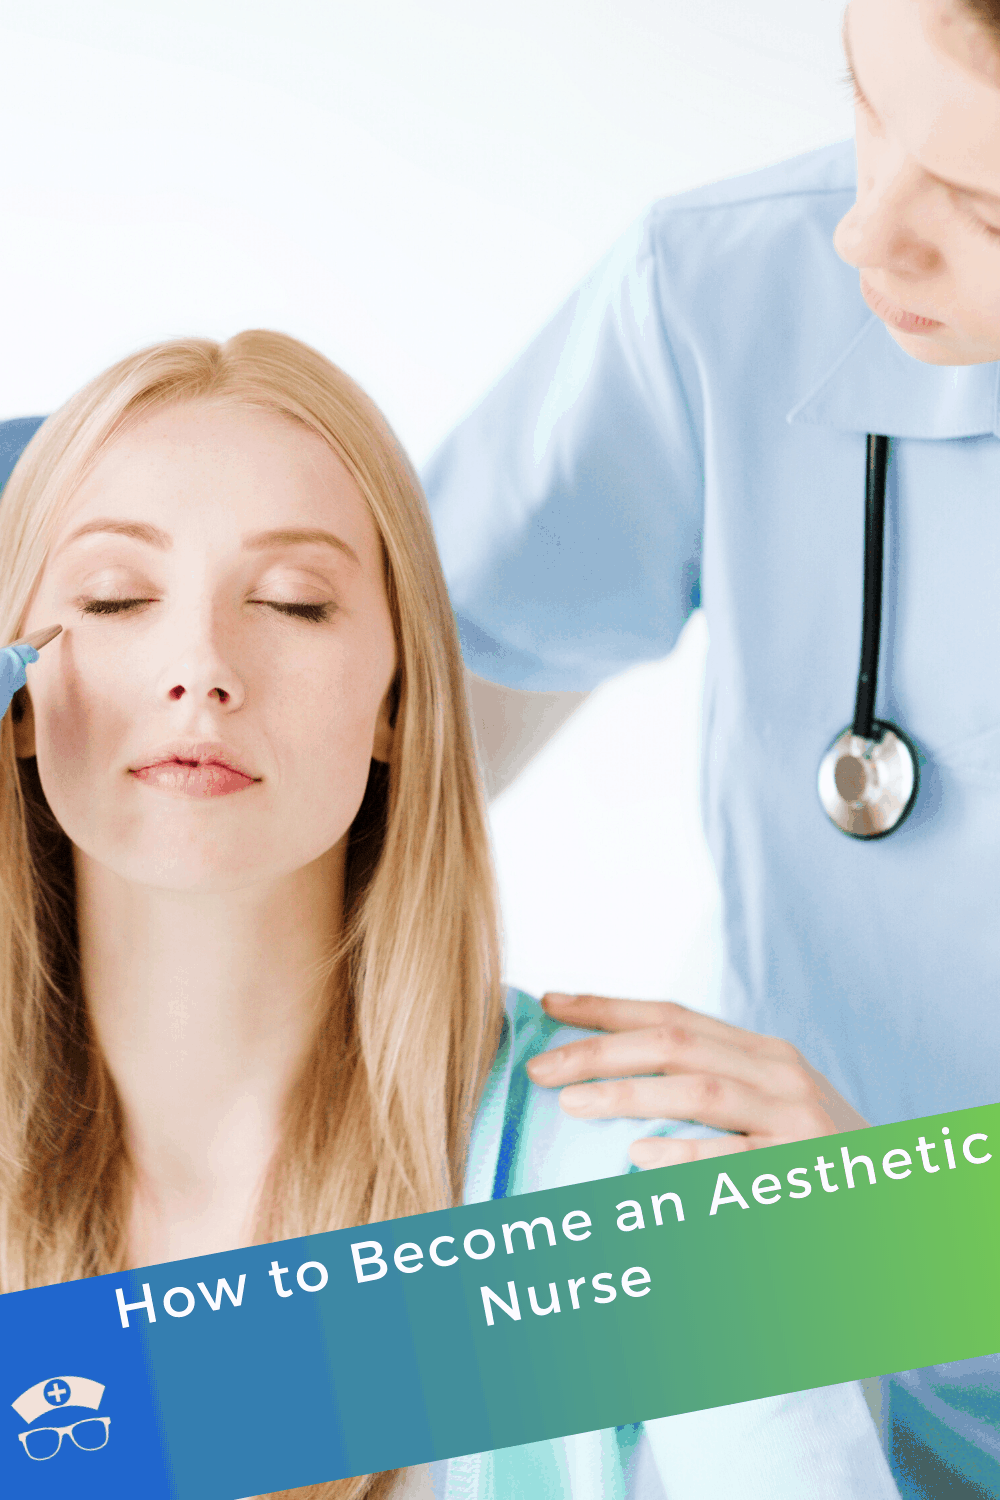 How to Become an Aesthetic Nurse. If you are already a nurse looking for other employment, or a new nurse looking for your specialty, let's look at how to become an aesthetic nurse. #thenerdynurse #nurse #nurses #nursespeciality #nursingspeciality #nursecareer